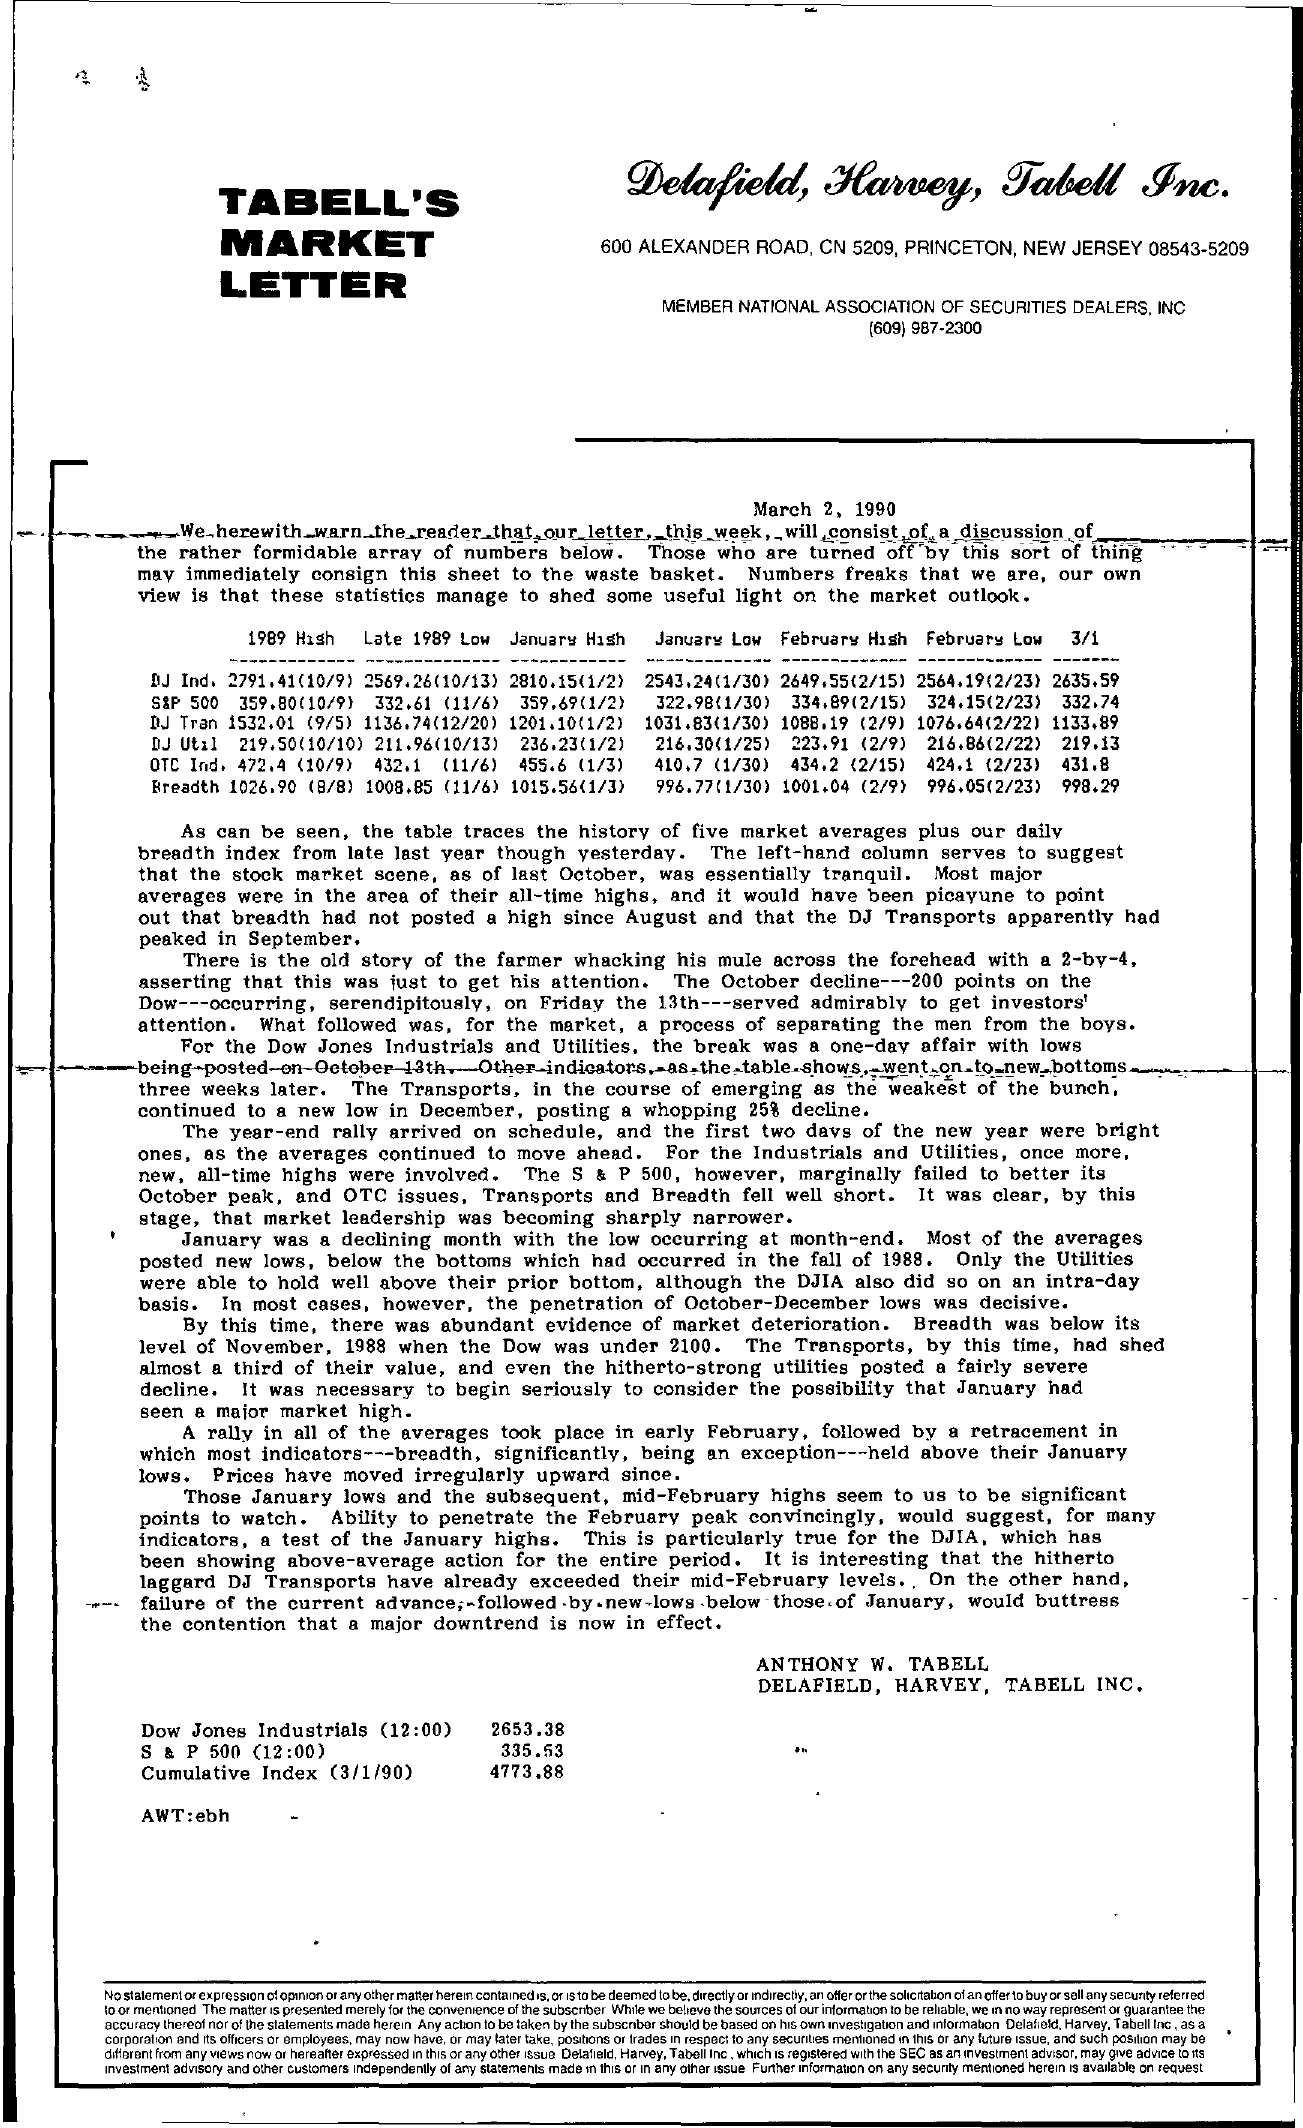 Tabell's Market Letter - March 02, 1990